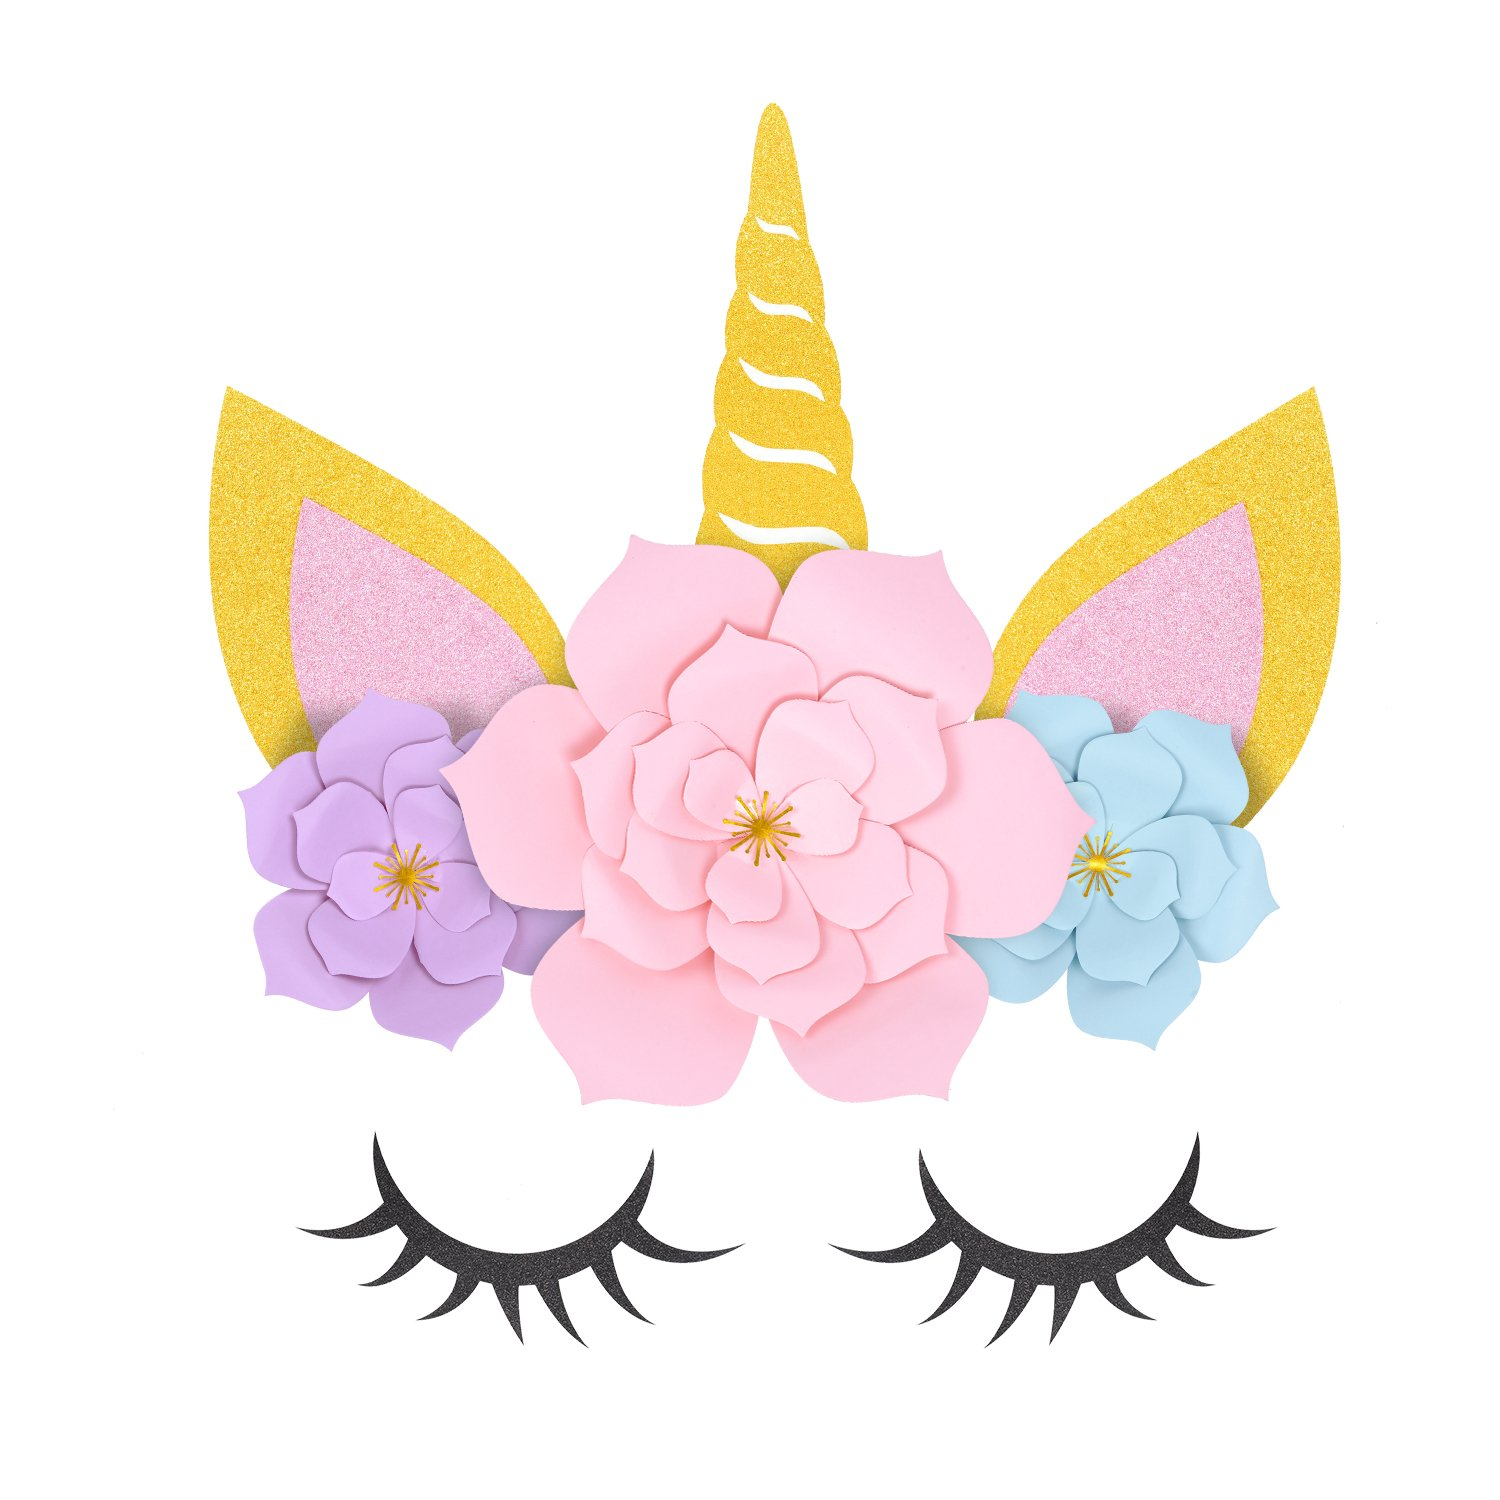 Crafts for Girls Ages 8-12 - DIY Unicorn Paper Flowers Kit with Glitter Giant Horn Ears Eyelashes - Room Decor Party Supplies and Decorations Backdrop for Kids Birthday Baby Shower